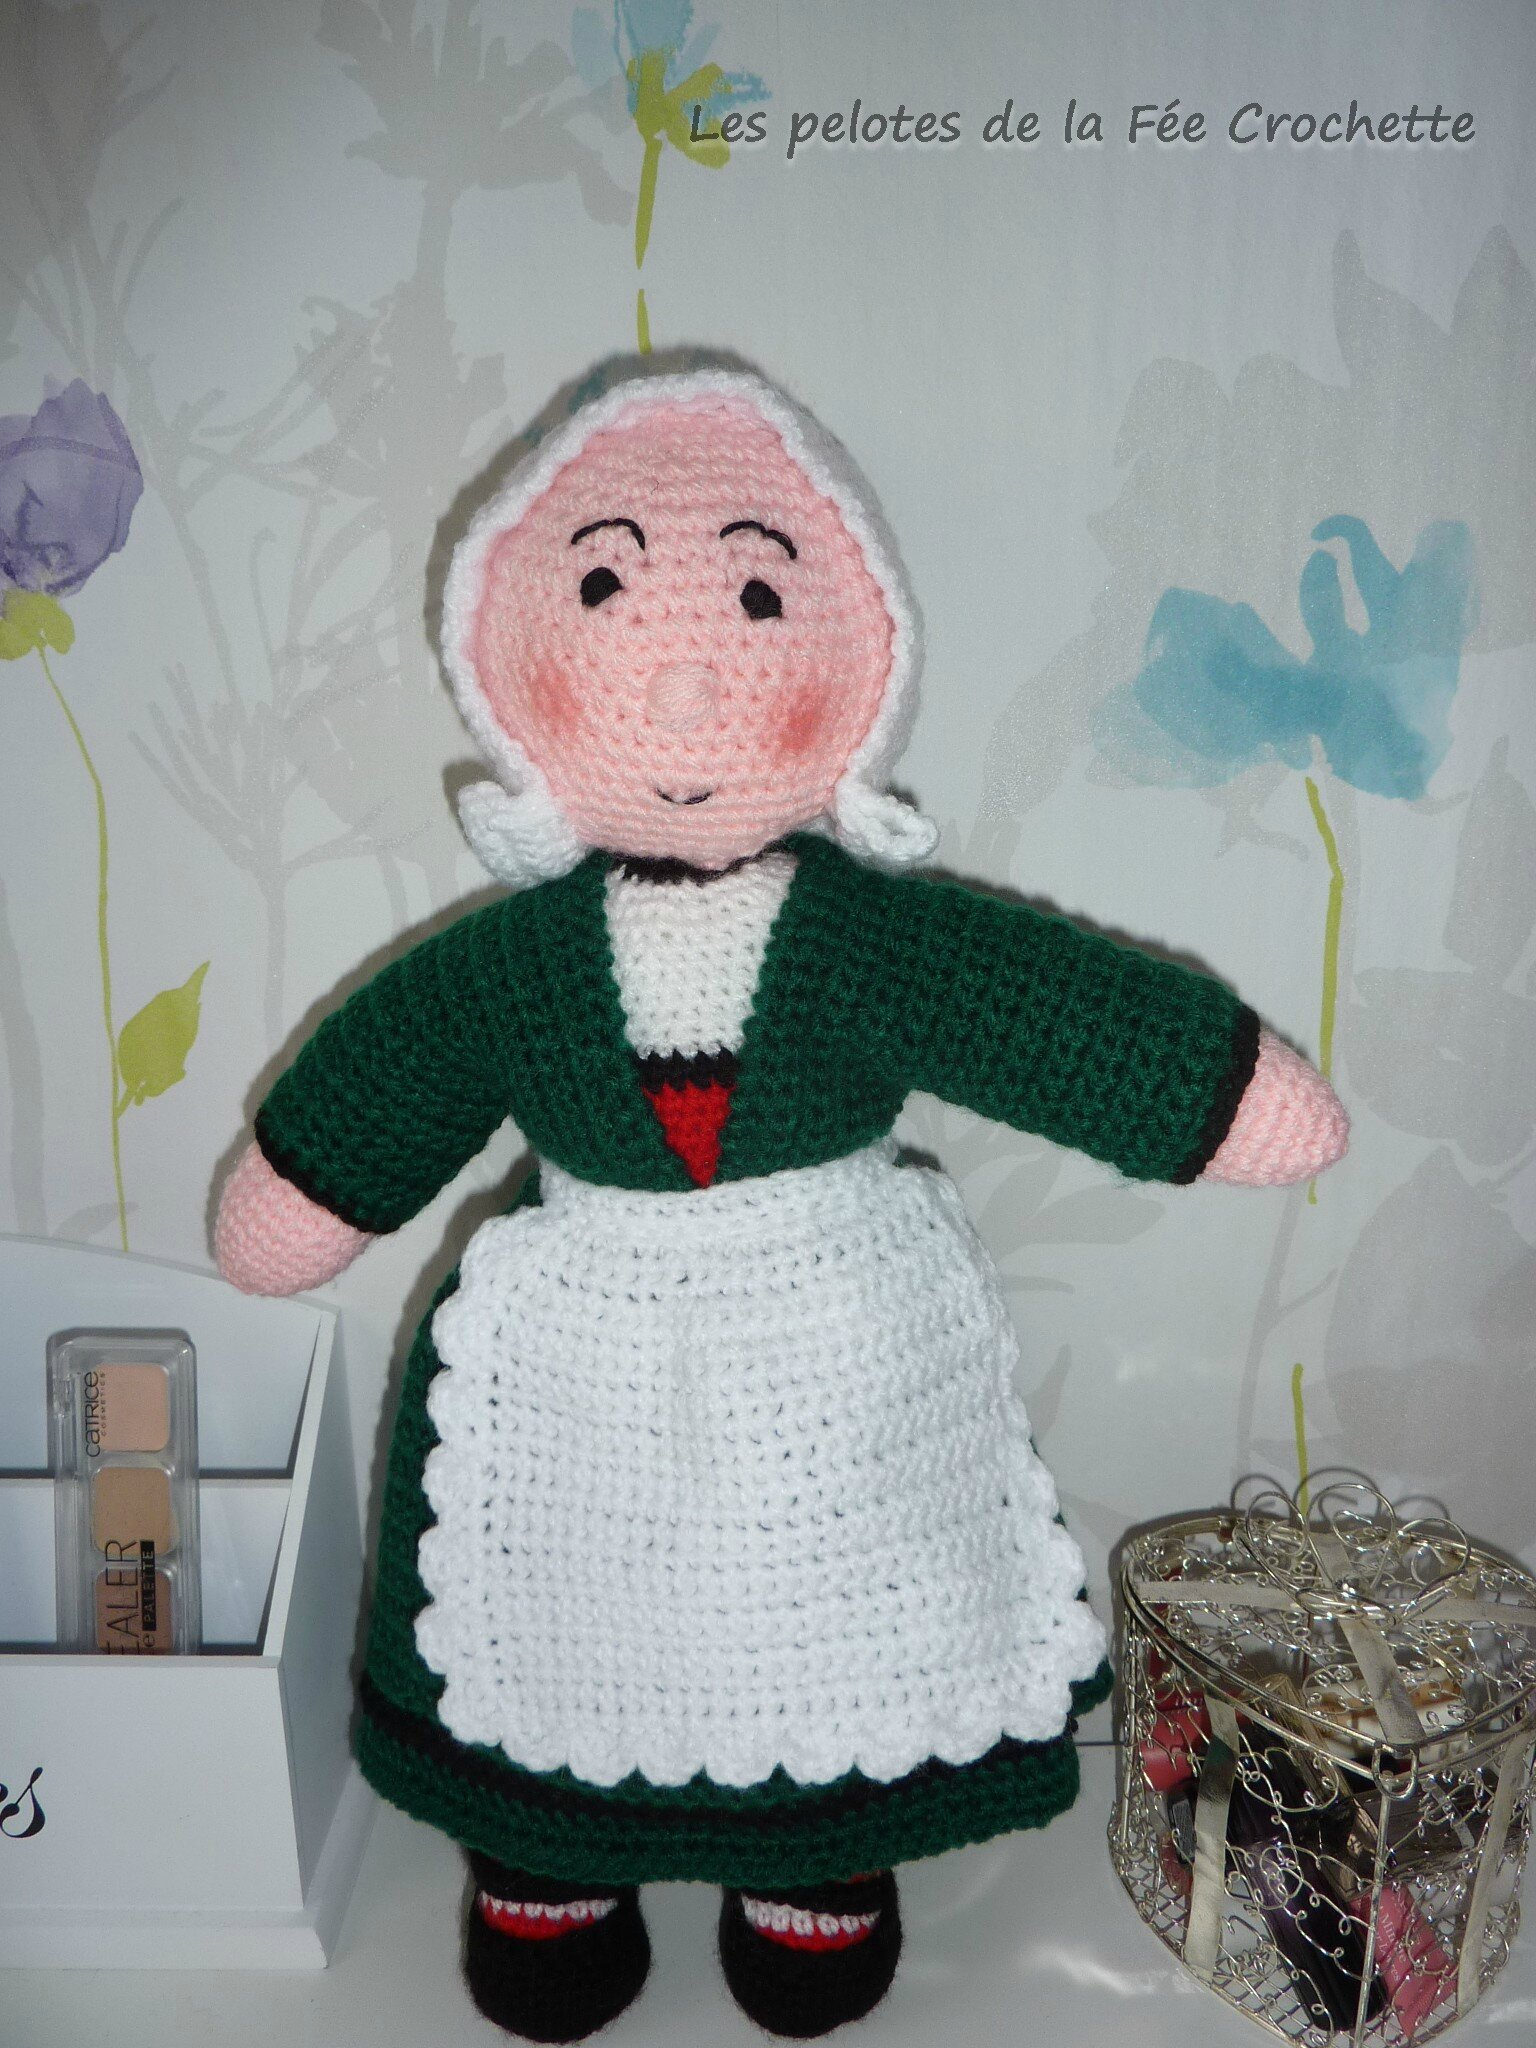 Bécassine crochet